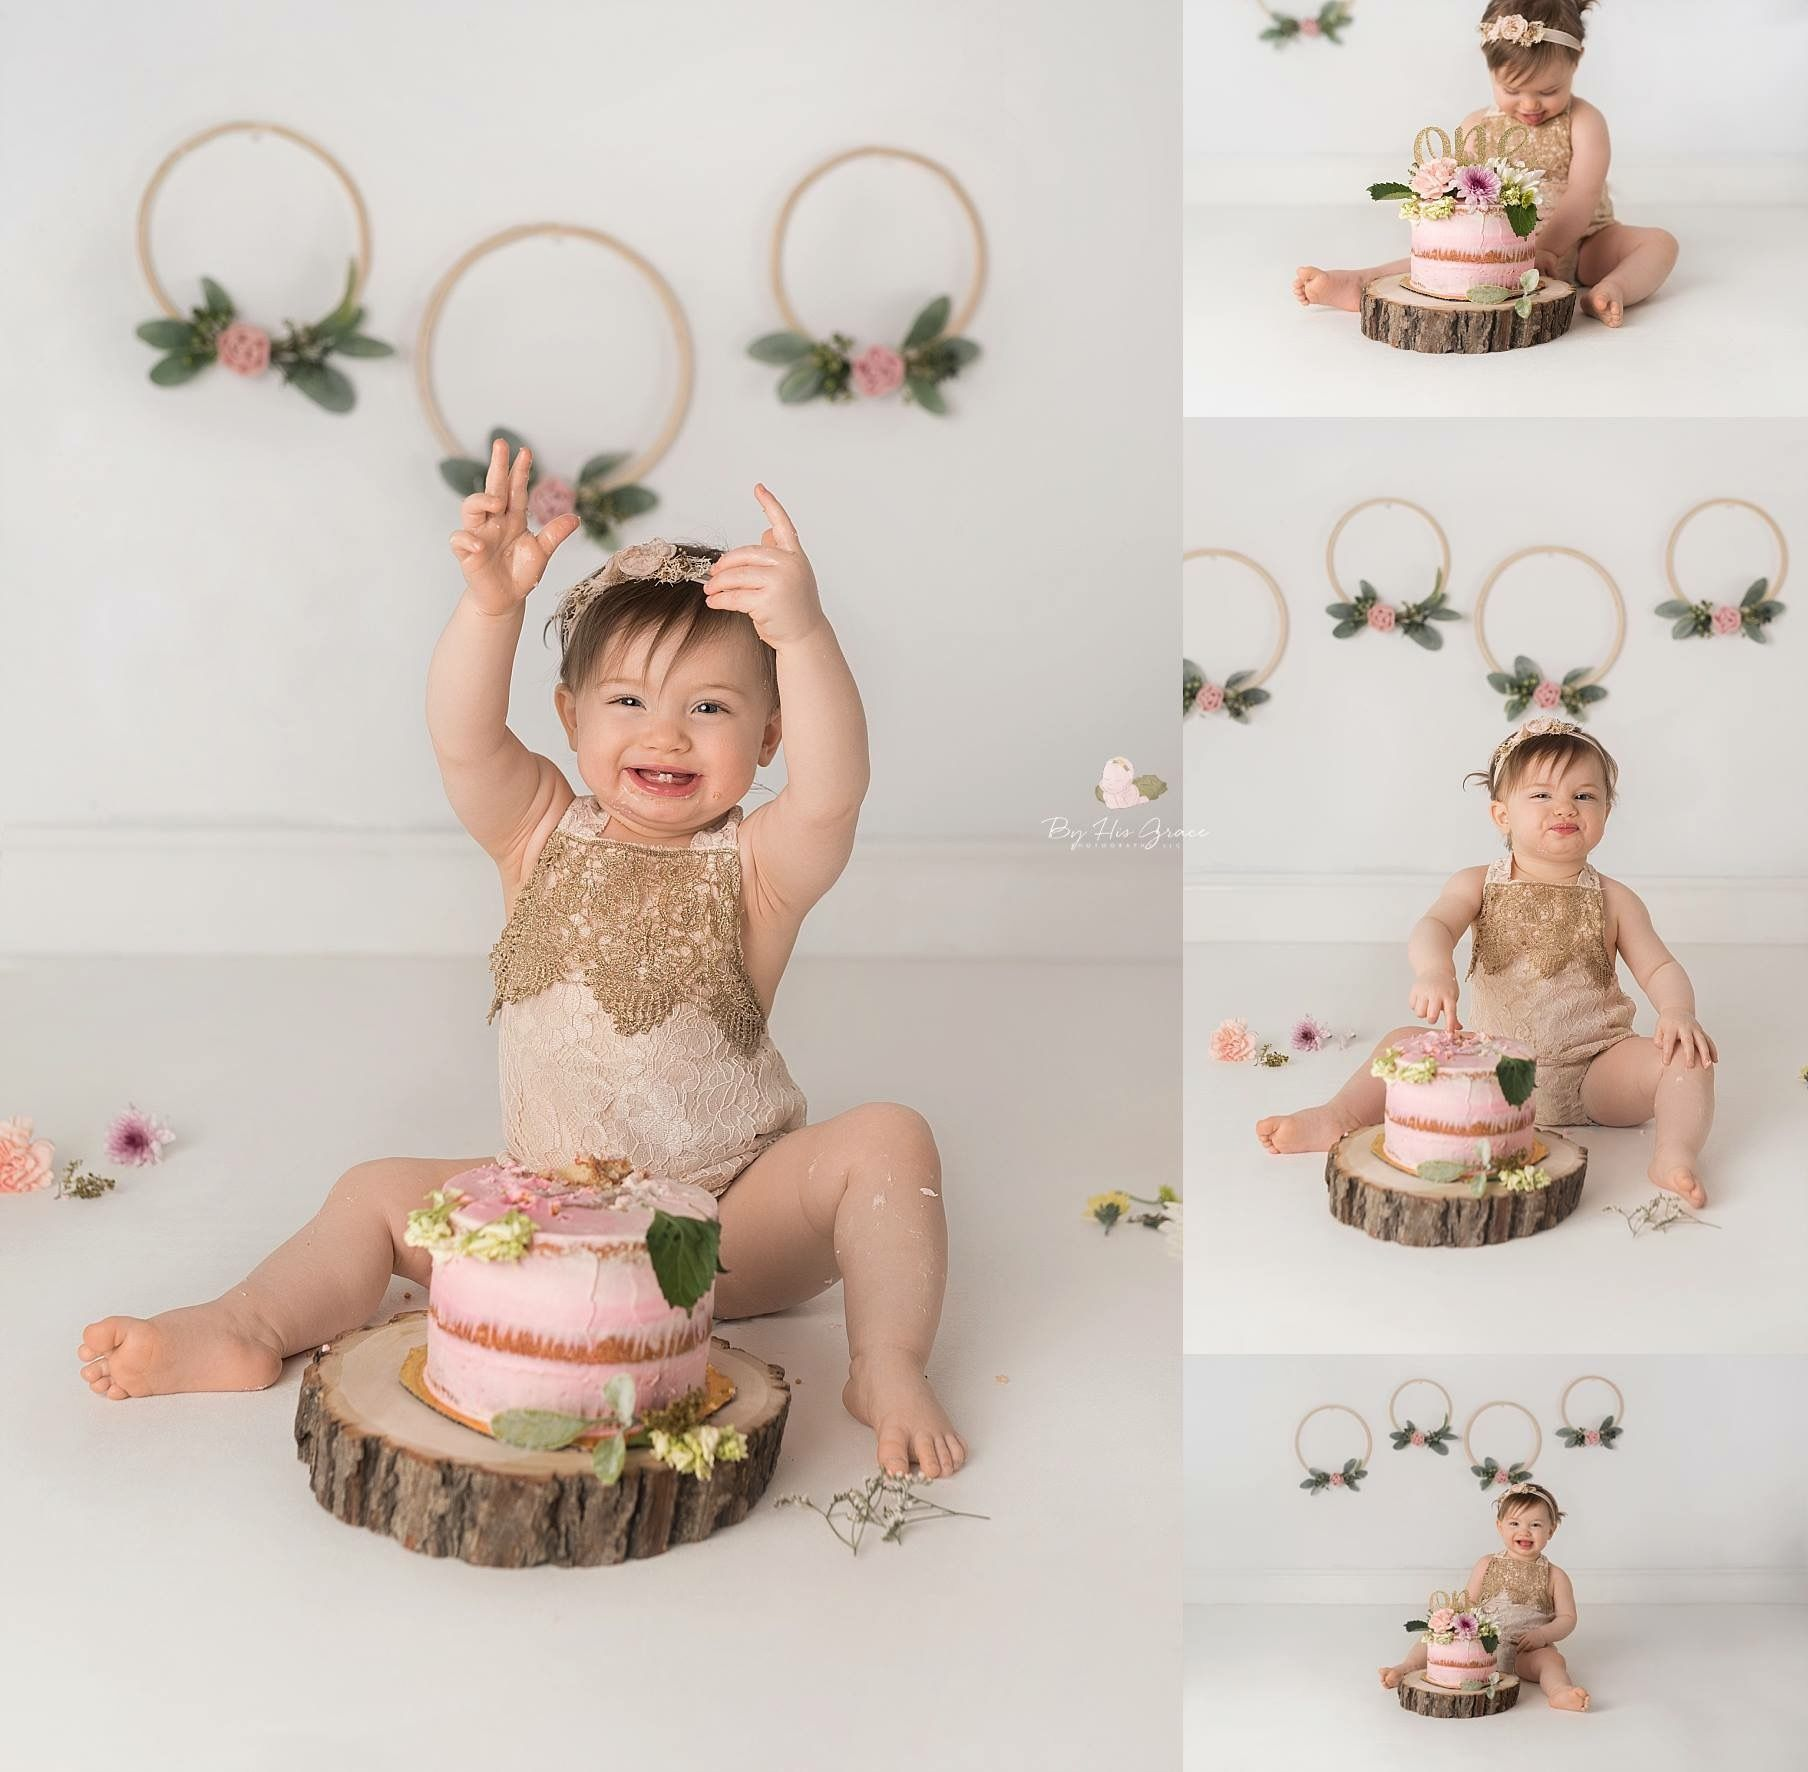 Bir Yas Smash cake girl, Birthday cake smash, 1st